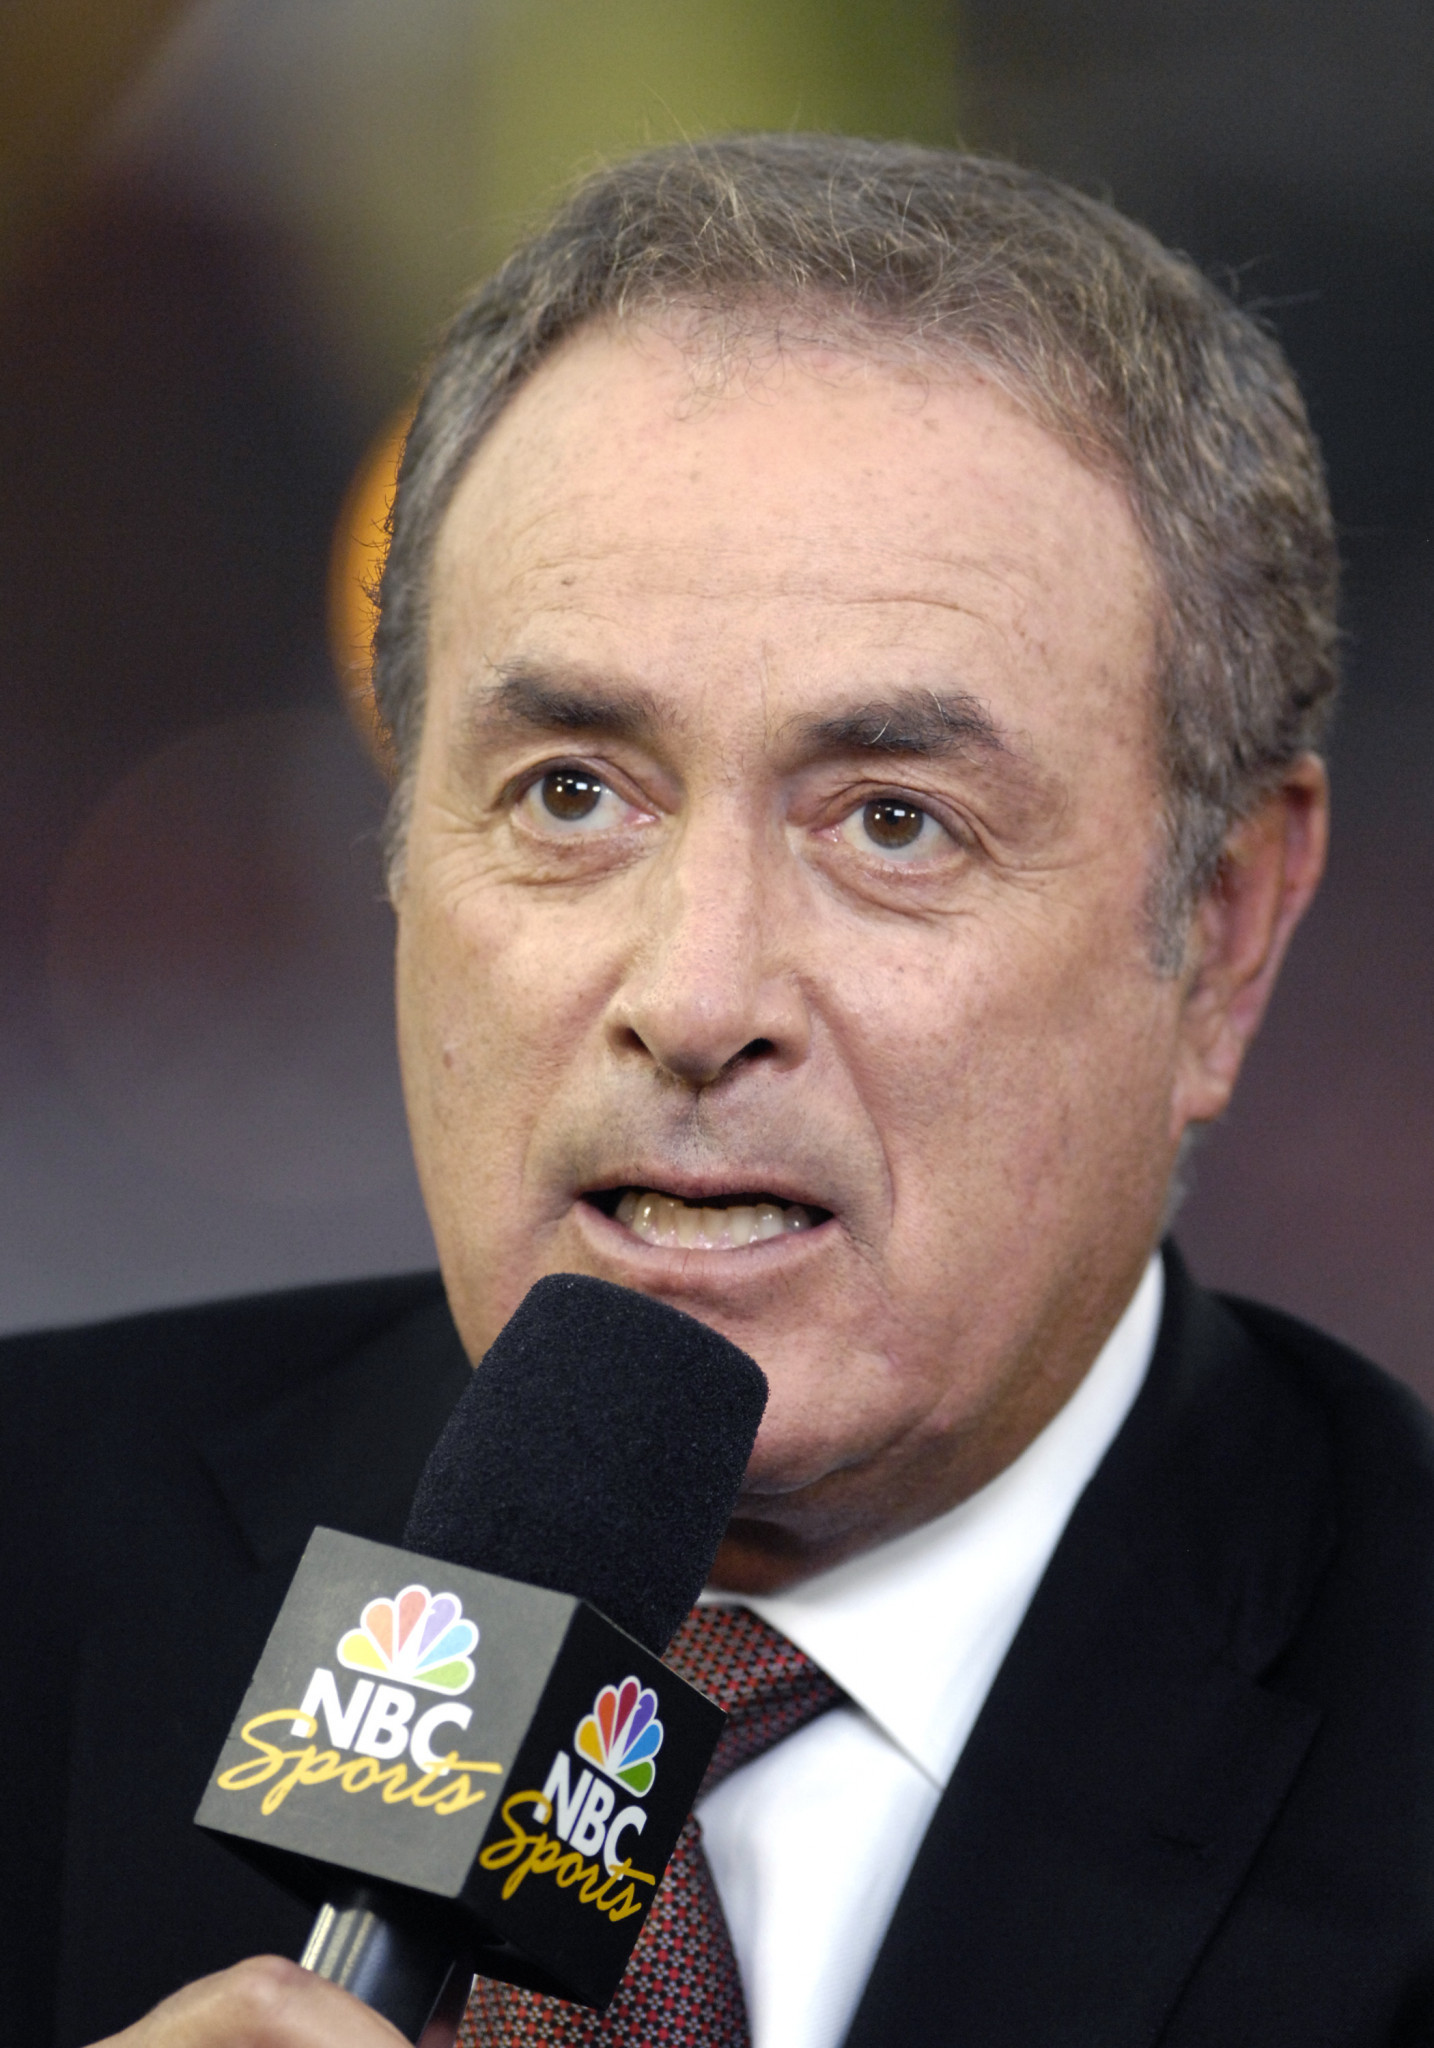 """Al Michaels' commentary on the US ice hockey victory over the Soviet Union at the 1980 Olympics is now legend: """"11 seconds, you've got 10 seconds, the countdown going on right now! Morrow, up to Silk. Five seconds left in the game. Do you believe in miracles? Yes!"""" ©Getty Images"""